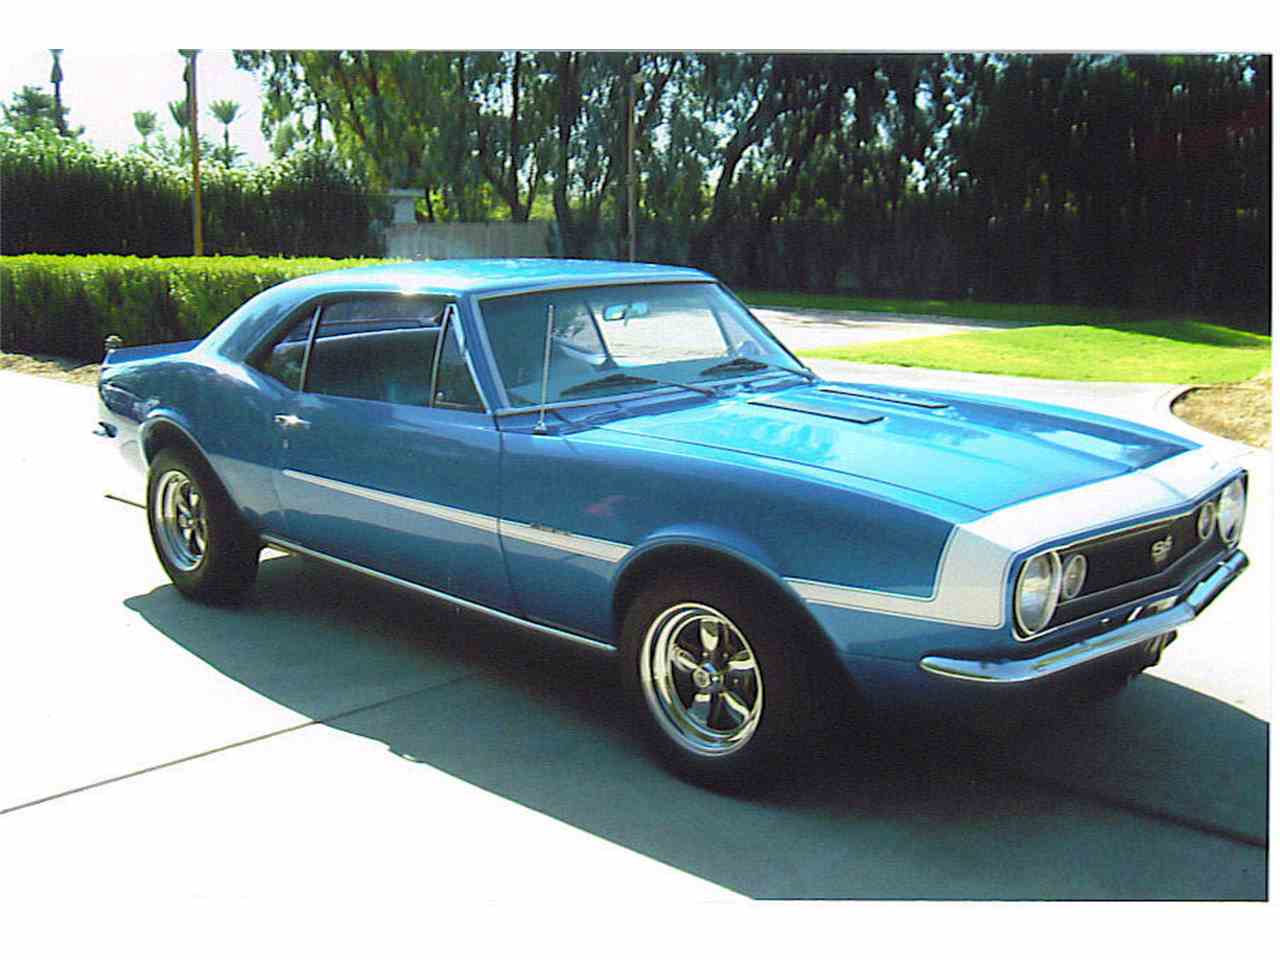 Large Picture of Classic 1969 Chevrolet Camaro located in Scottsdale Arizona - $110,000.00 Offered by Desert Classic Mustangs - JQJB